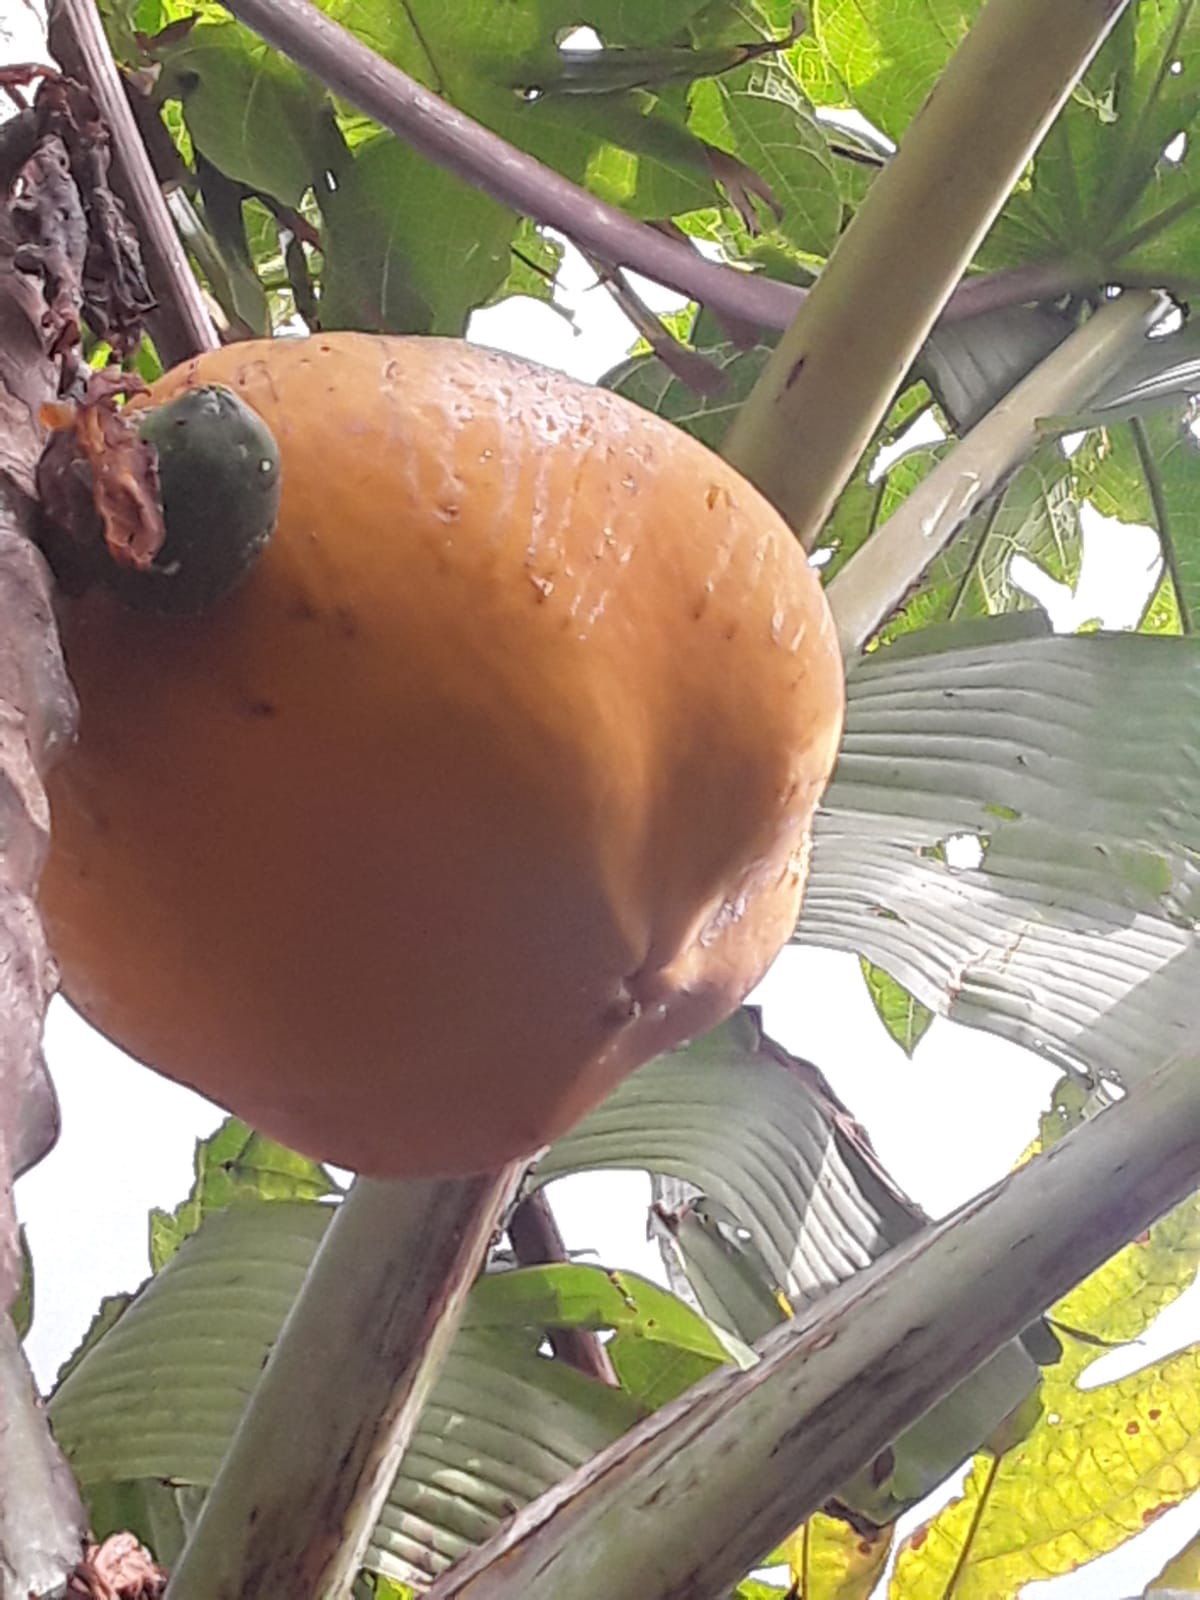 large orange sun ripened papaya at the top of the tree waiting to be harvested